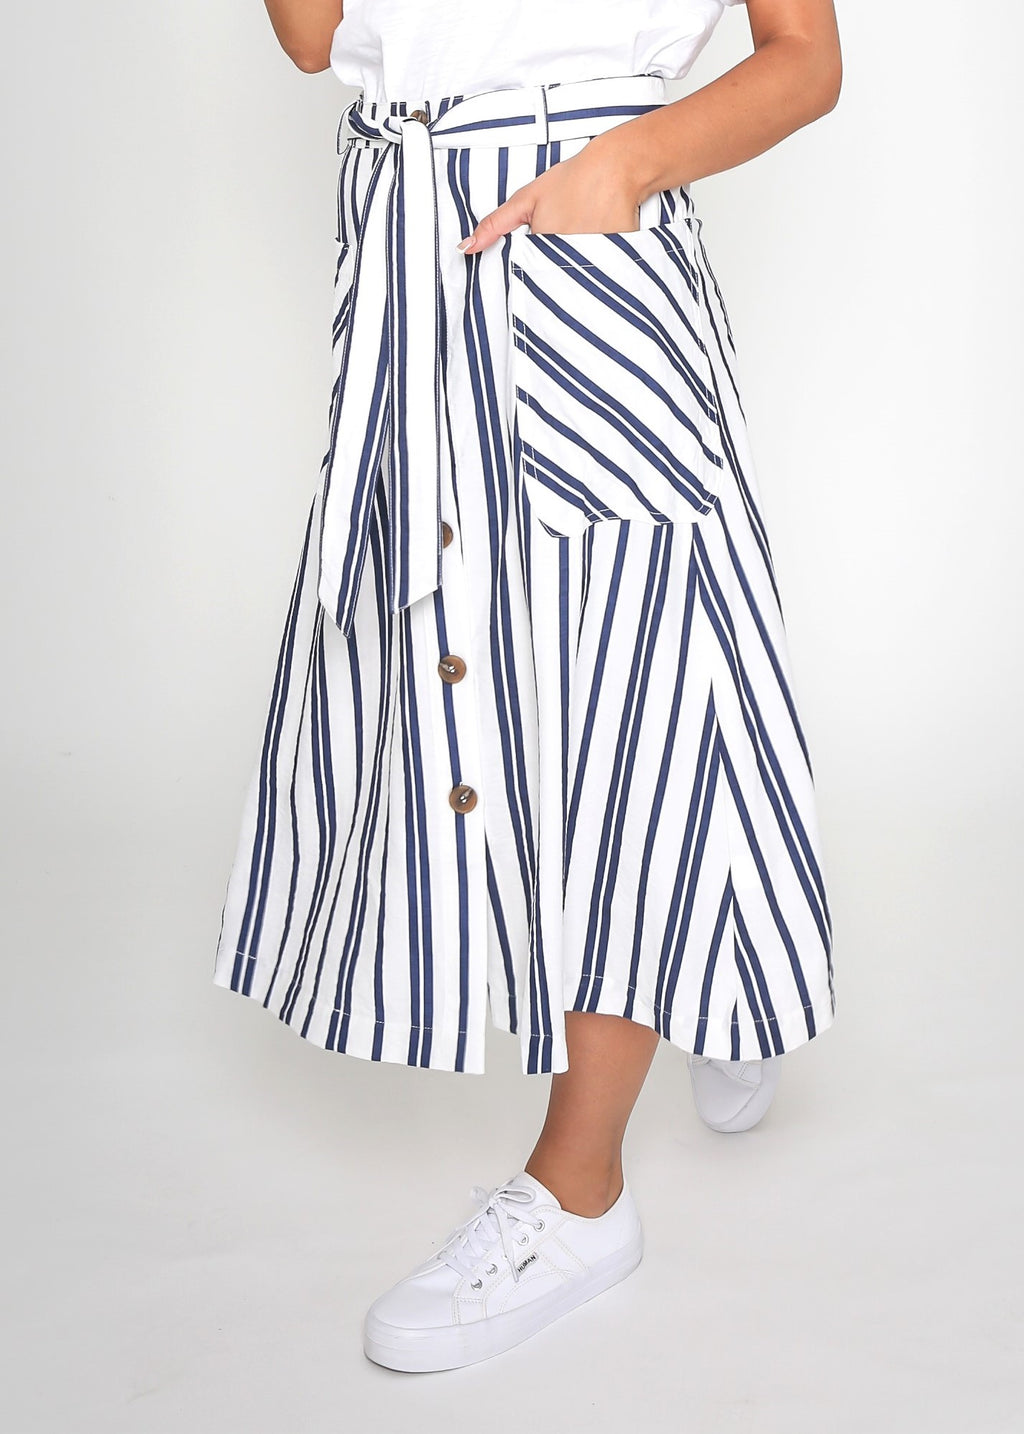 SASHA STRIPED SKIRT - NAVY STRIPE - MARK DOWN MADNESS